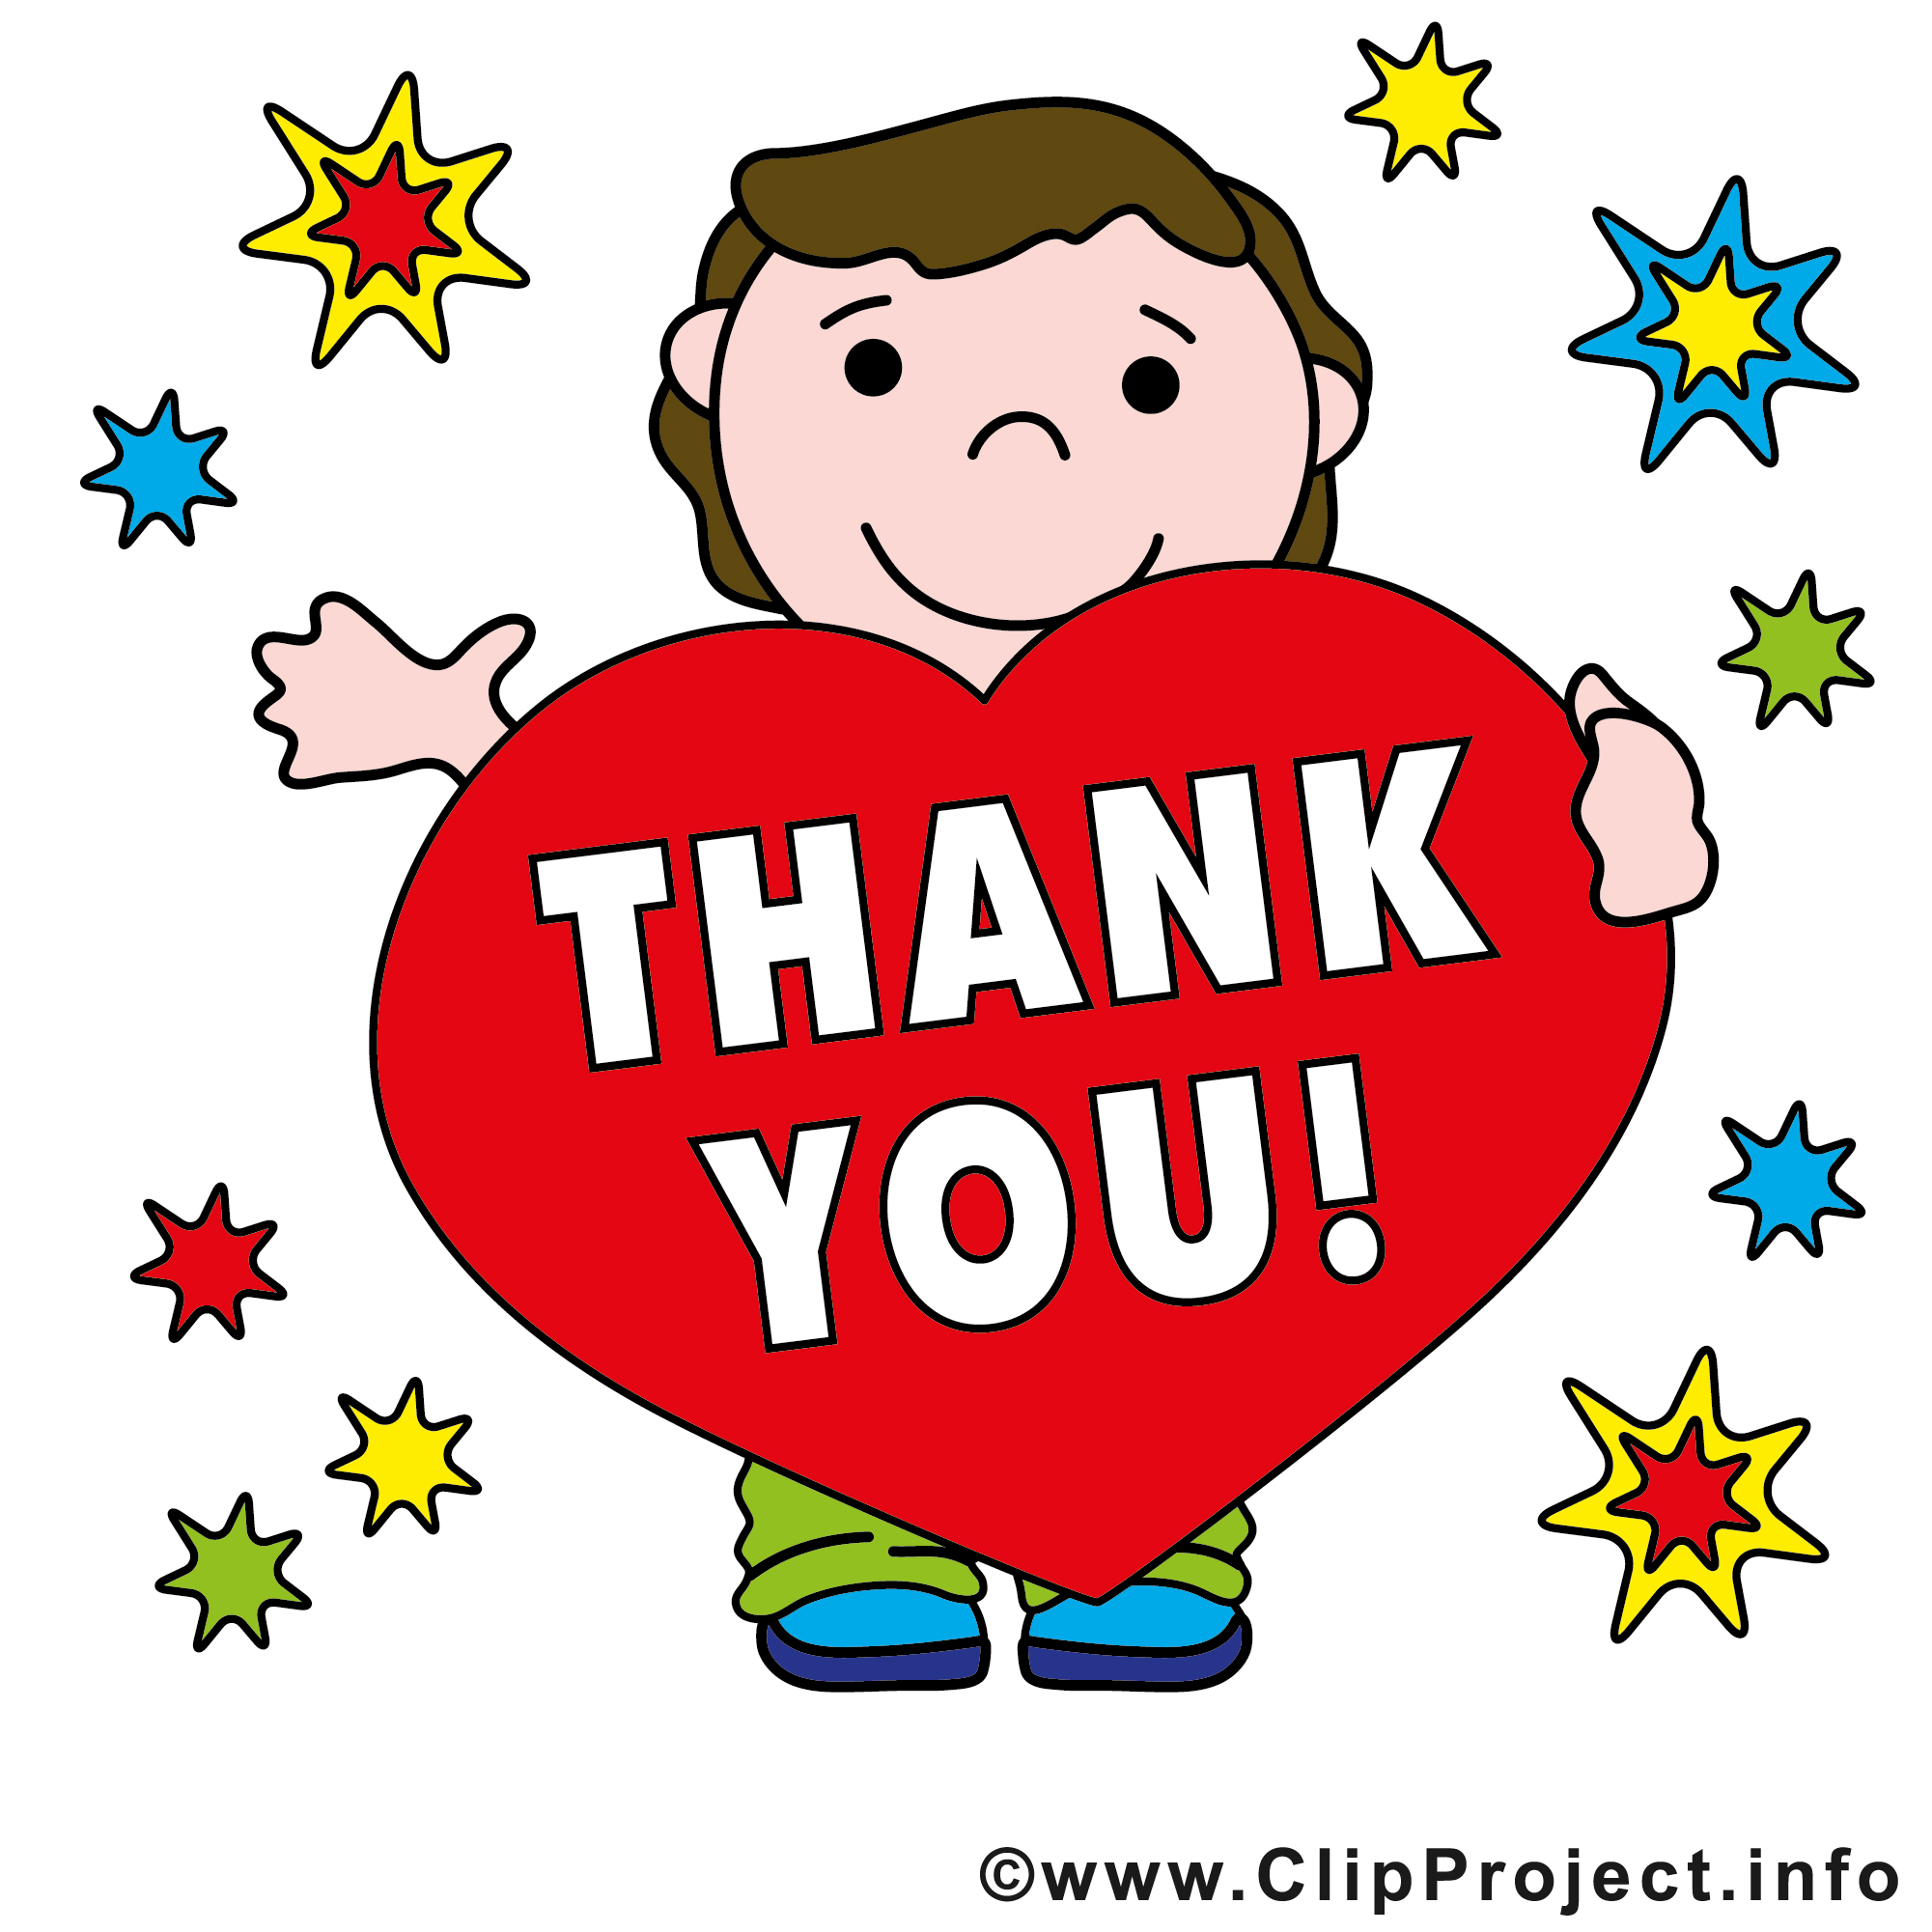 thank you images - Clipart Thank You